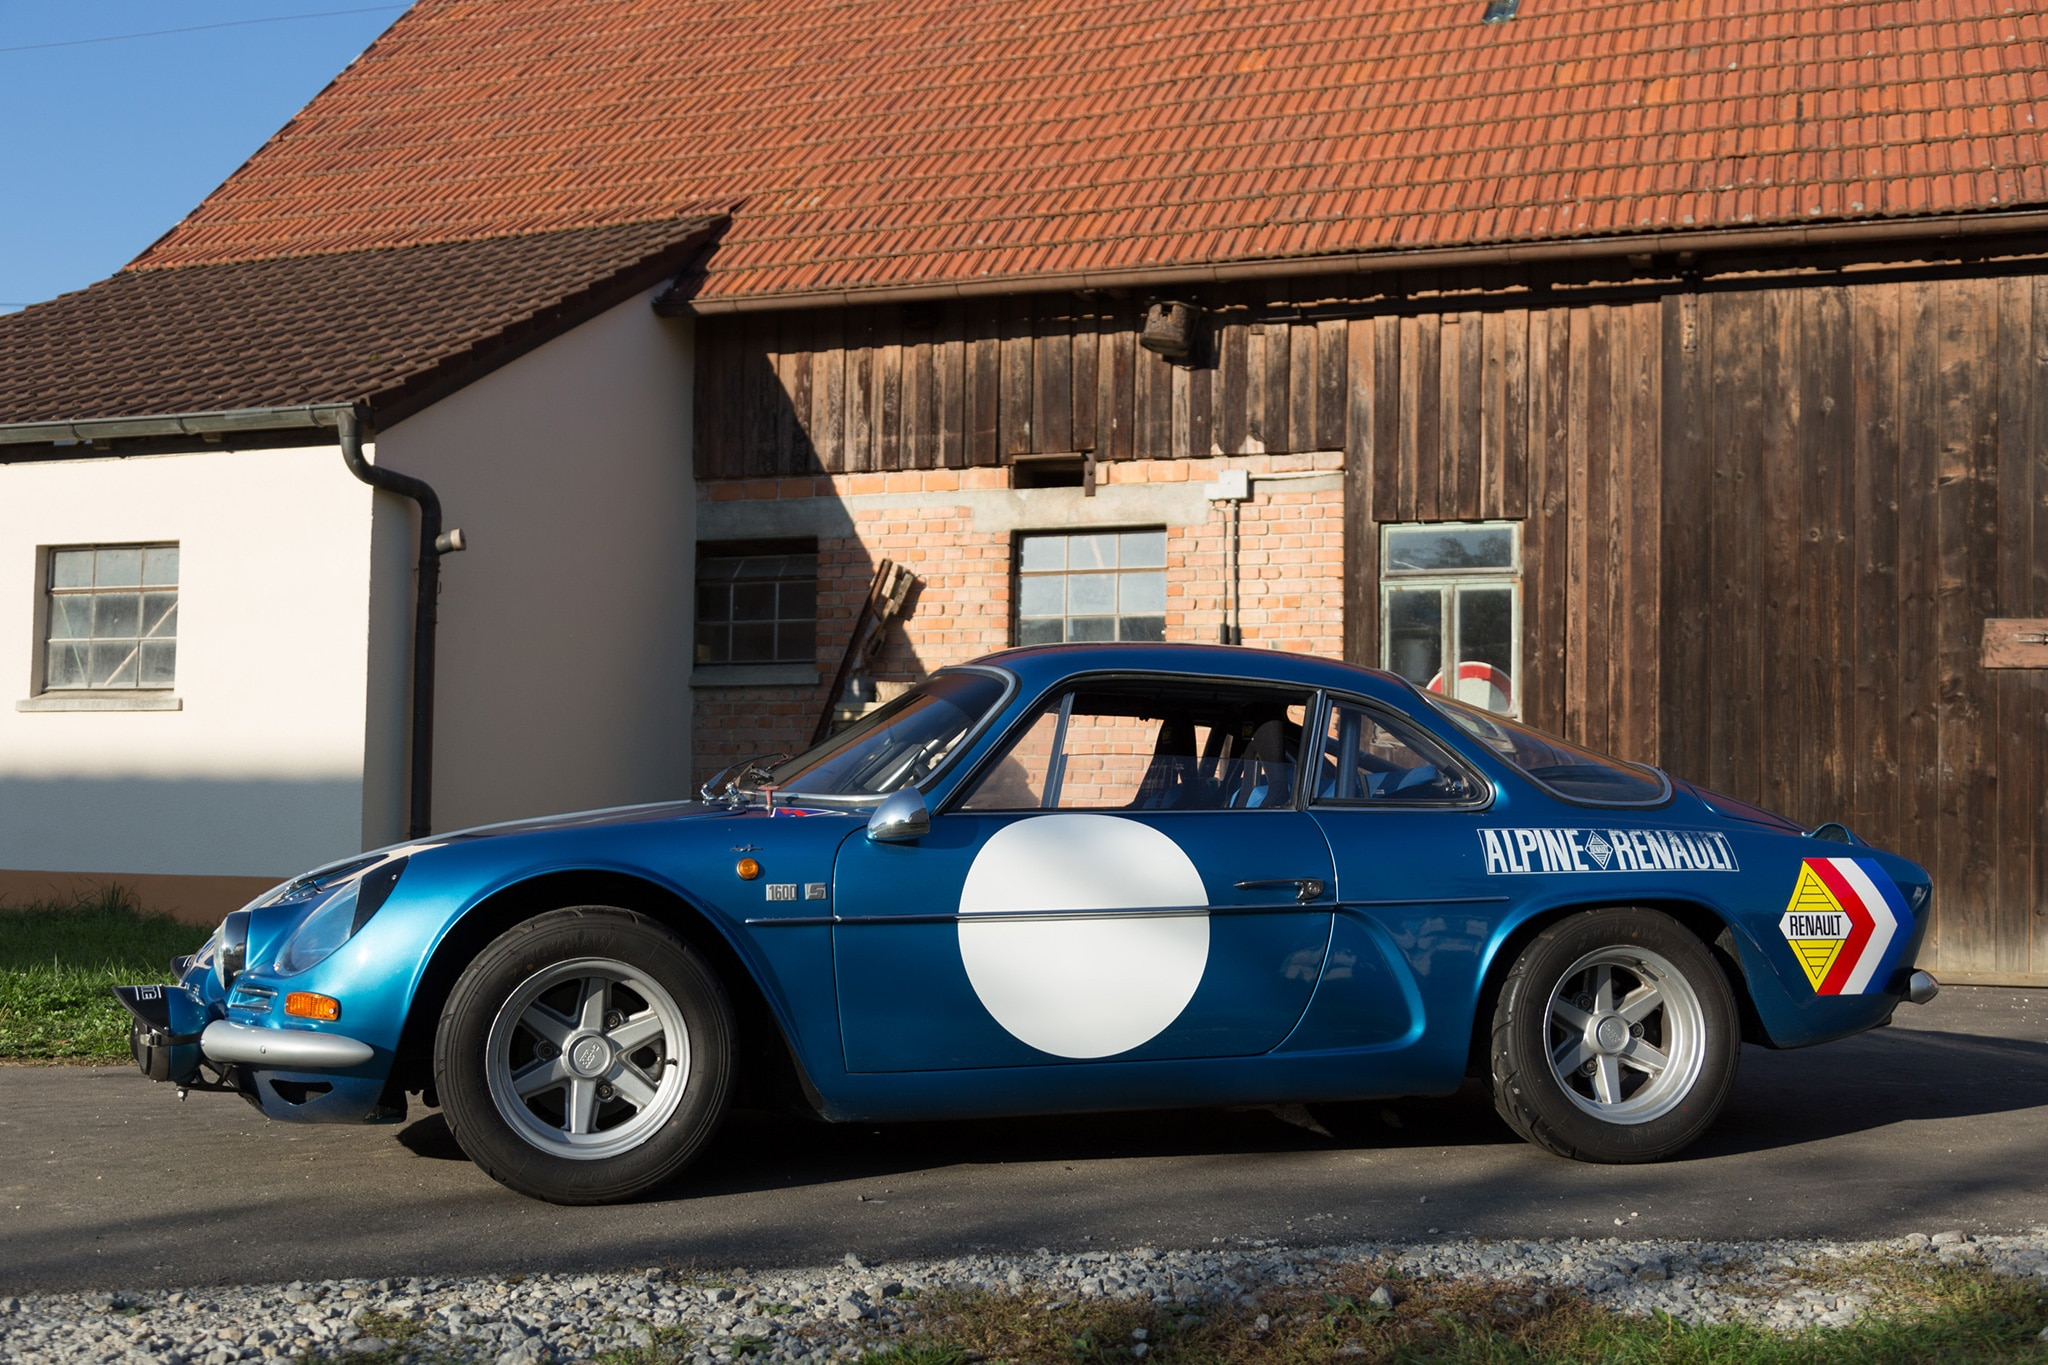 1971 Renault Alpine A110 1600S Petrolicious Side Profile 01